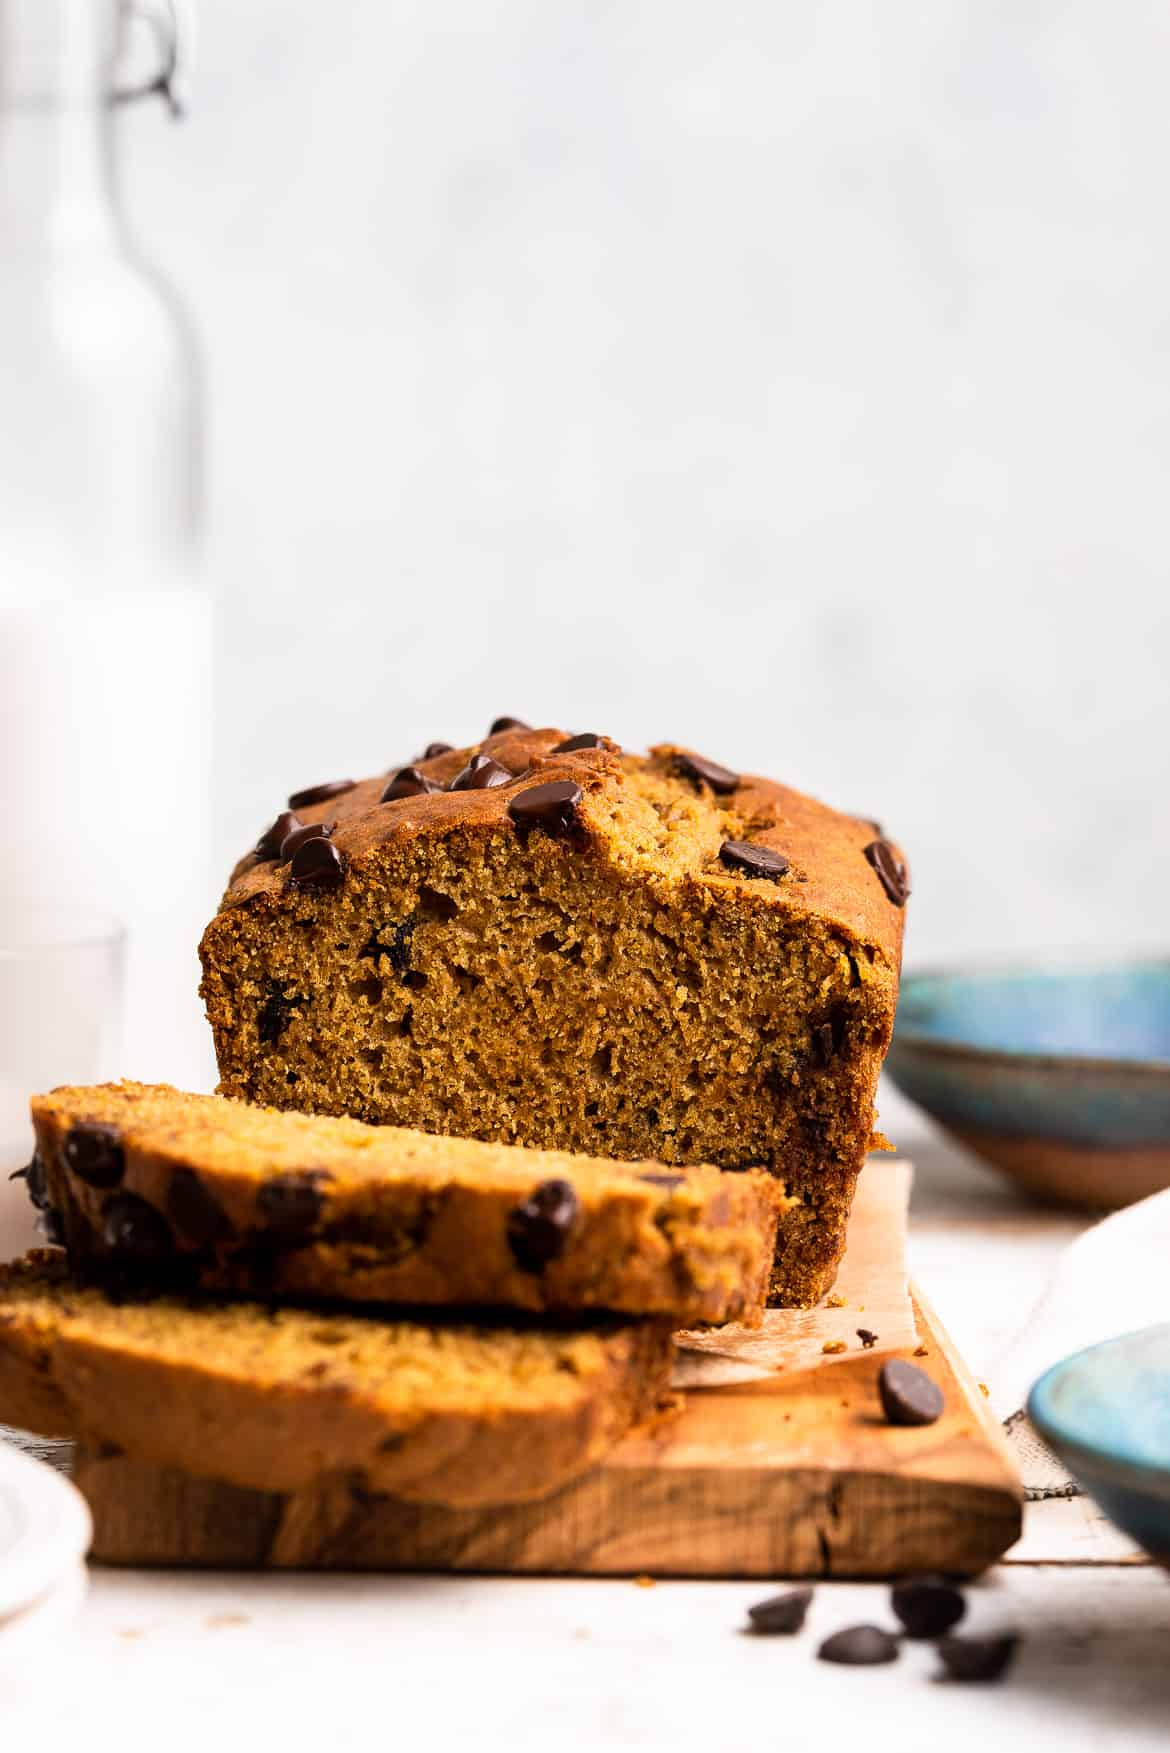 Slices of homemade pumpkin bread topped with chocolate chips.